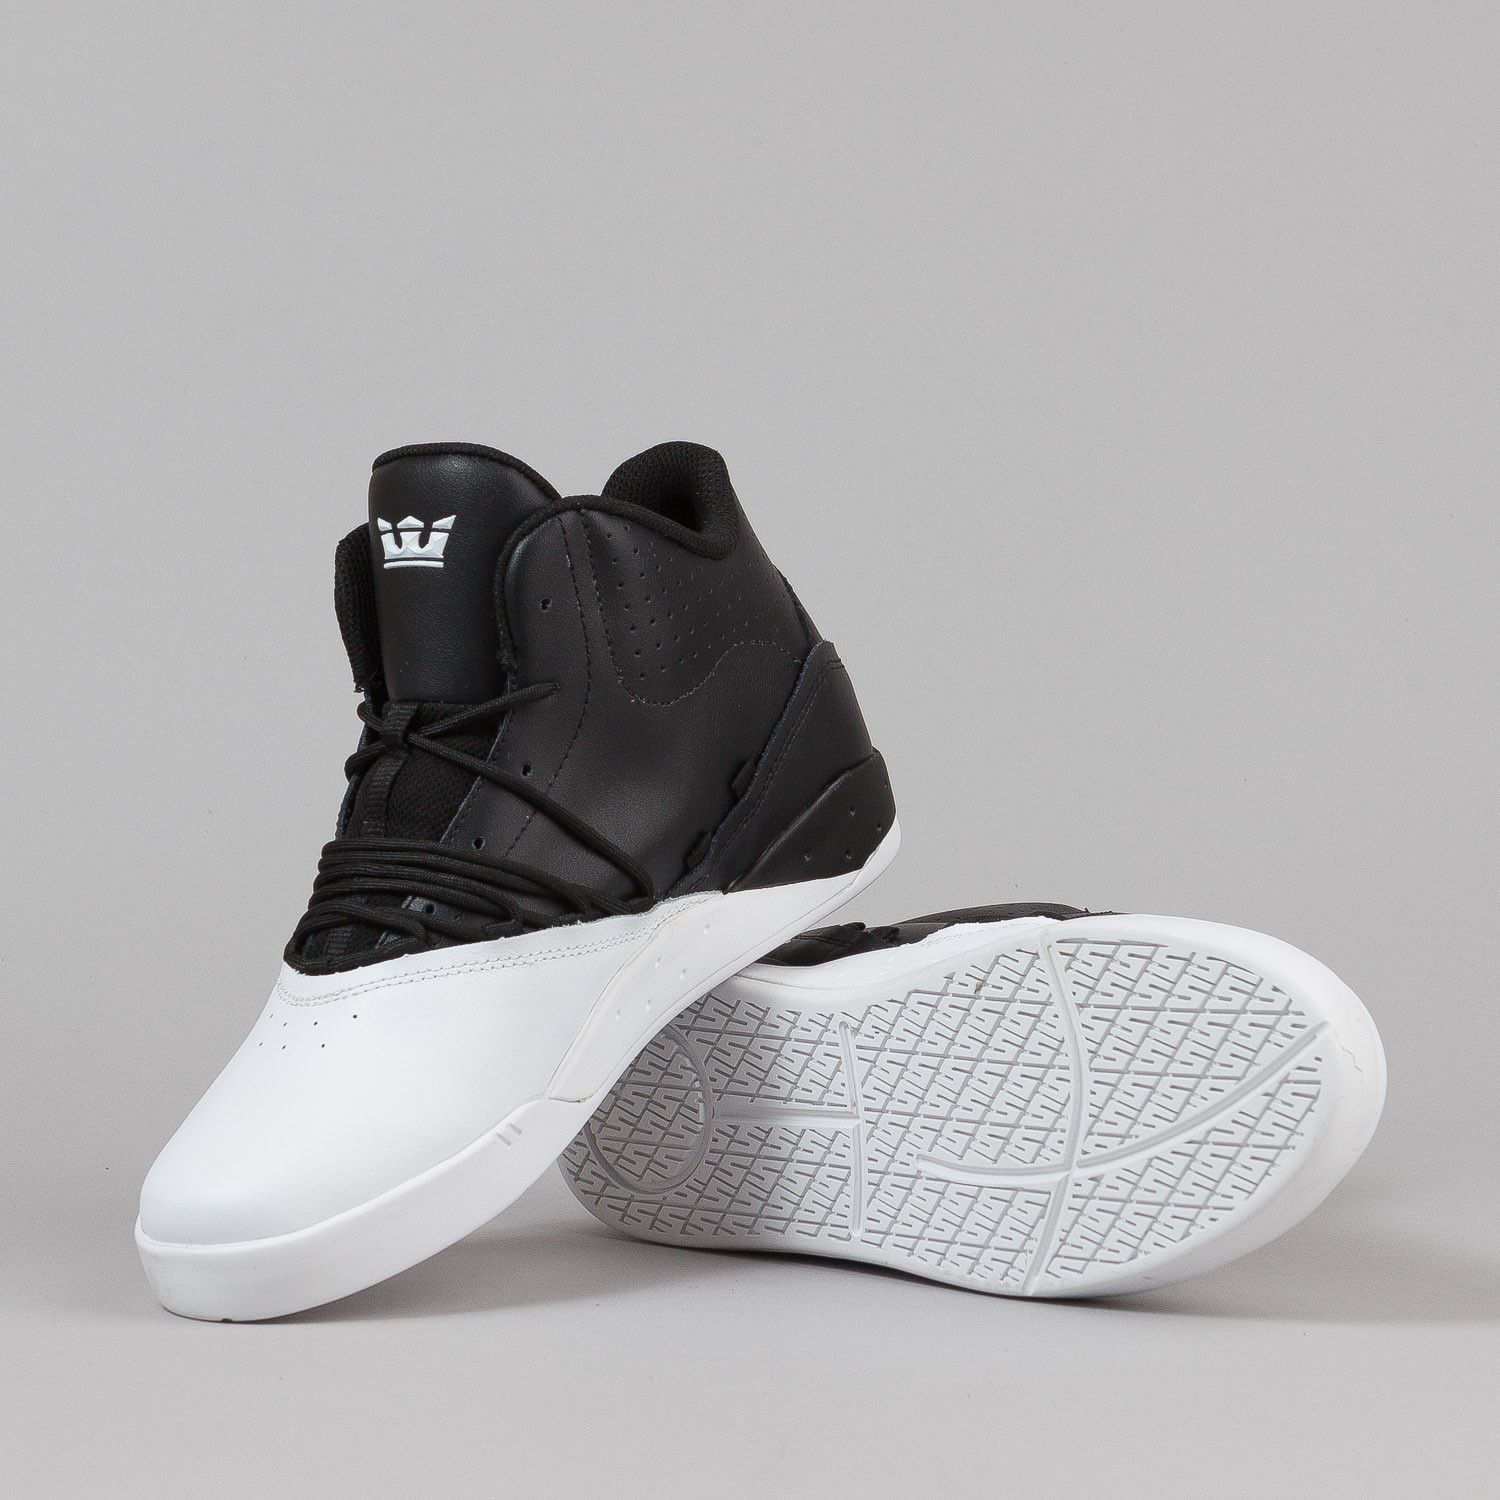 cheaper b99f8 fe303 Supra Estaban Shoes - Black   White   White